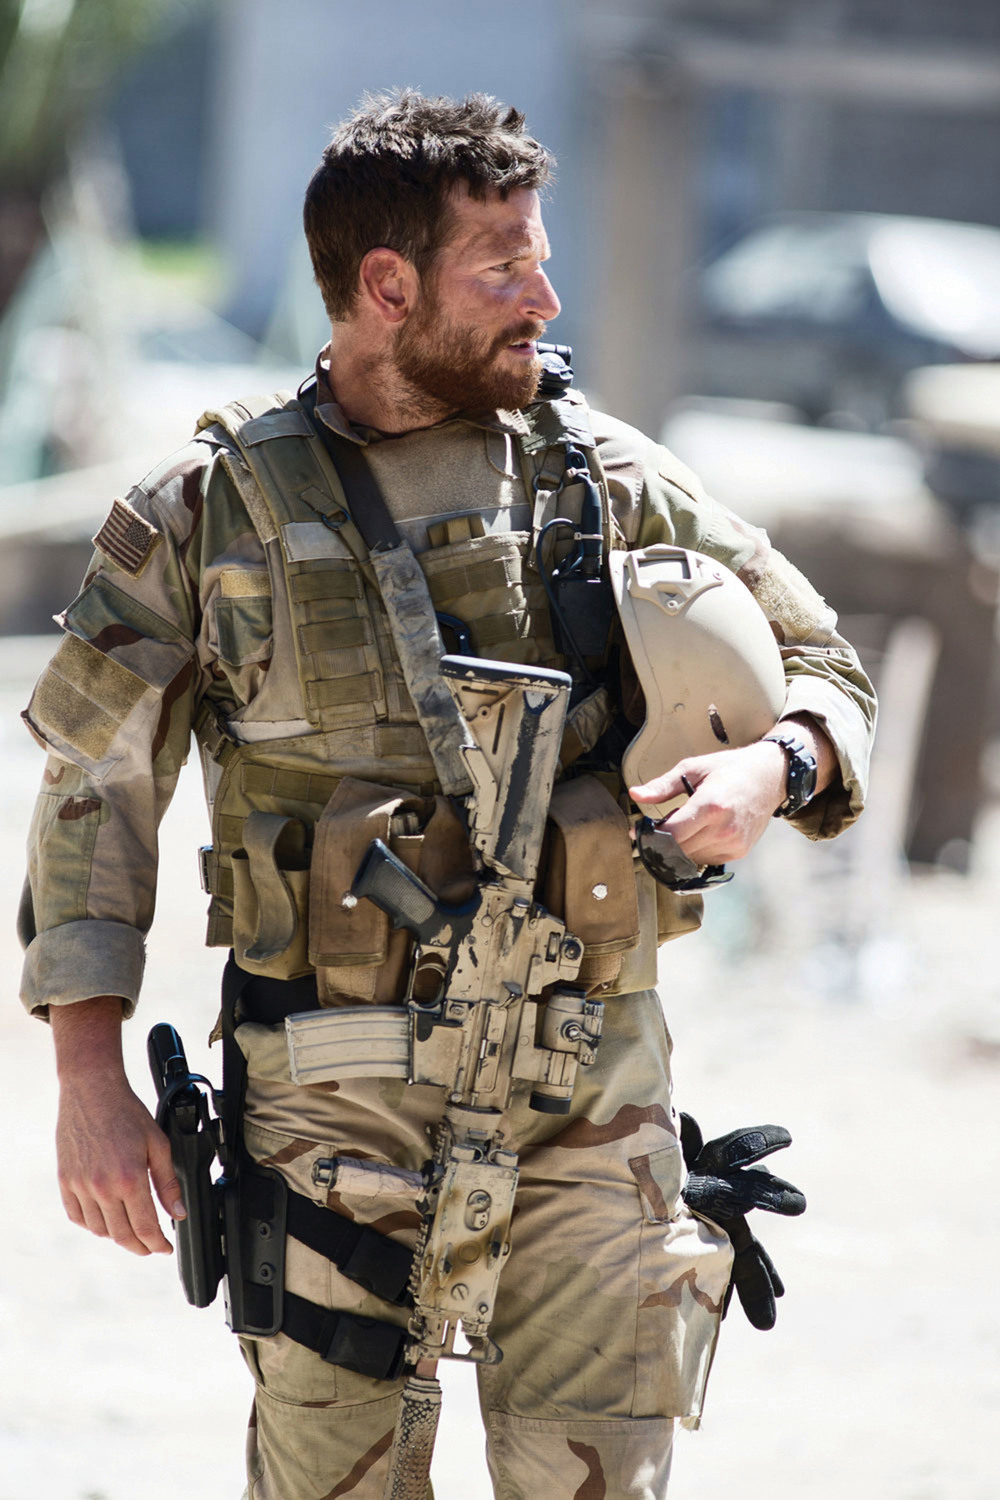 A beefed up Bradley Cooper as Chris Kyle, America's deadliest sniper, in Clint Eastwood's blockbuster homage to the warrior ethos, American Sniper (2014).